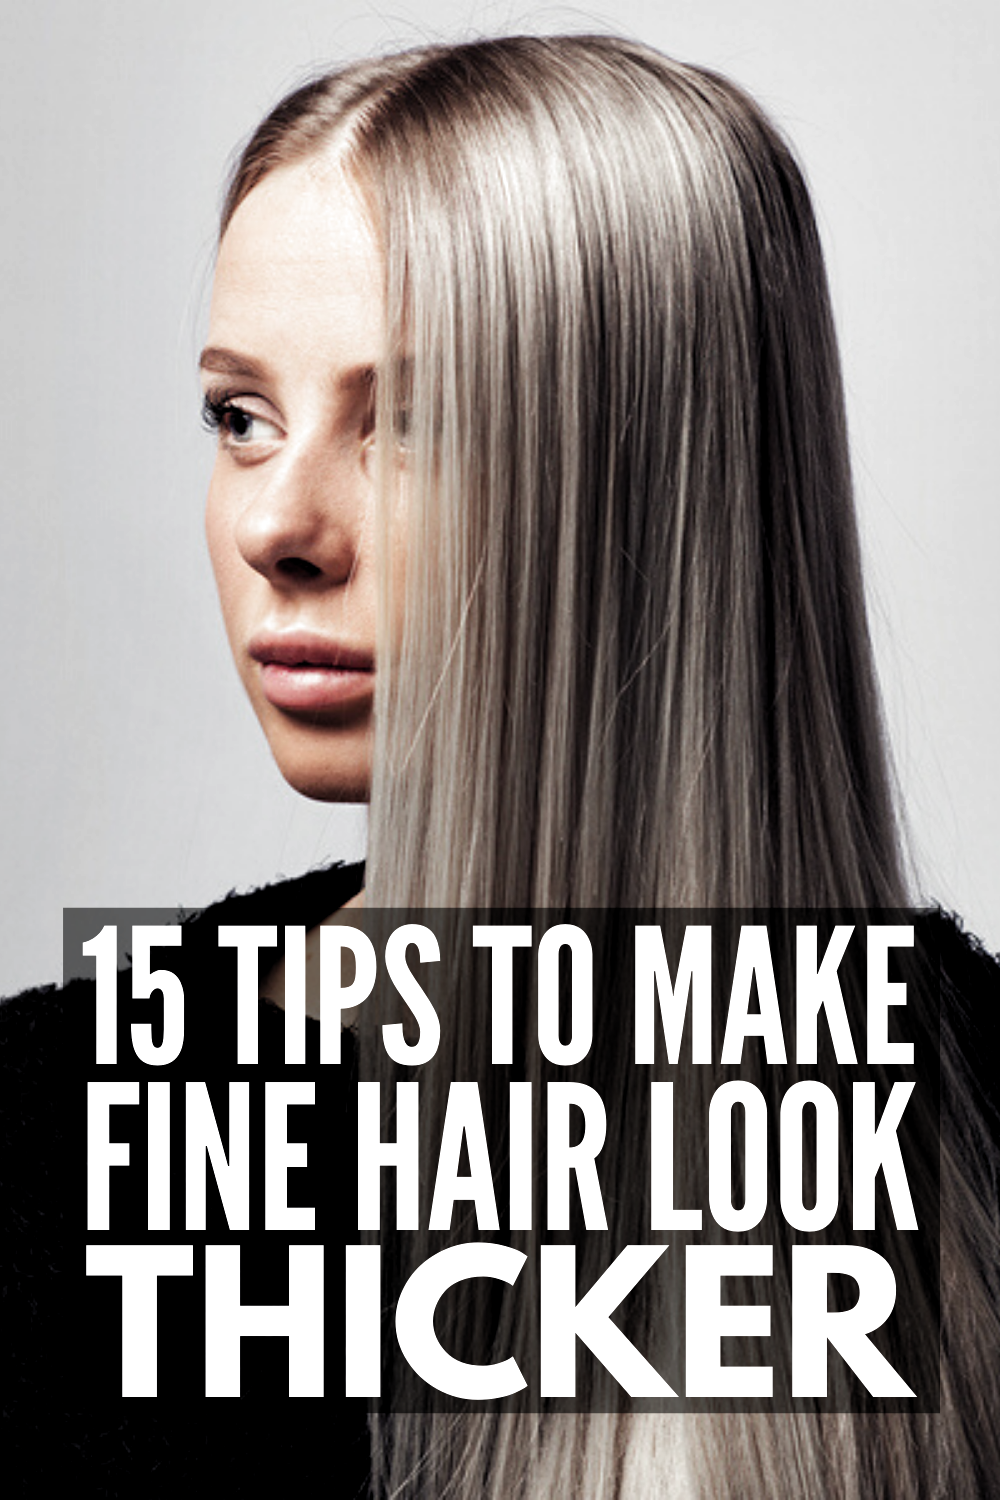 15 Fine Thin Hair Tips And Hacks Want To Know How To Make Your Hair Look Thicker And Fuller Knowing T In 2020 Thin Hair Tips Hairstyles For Thin Hair Fine Hair Tips